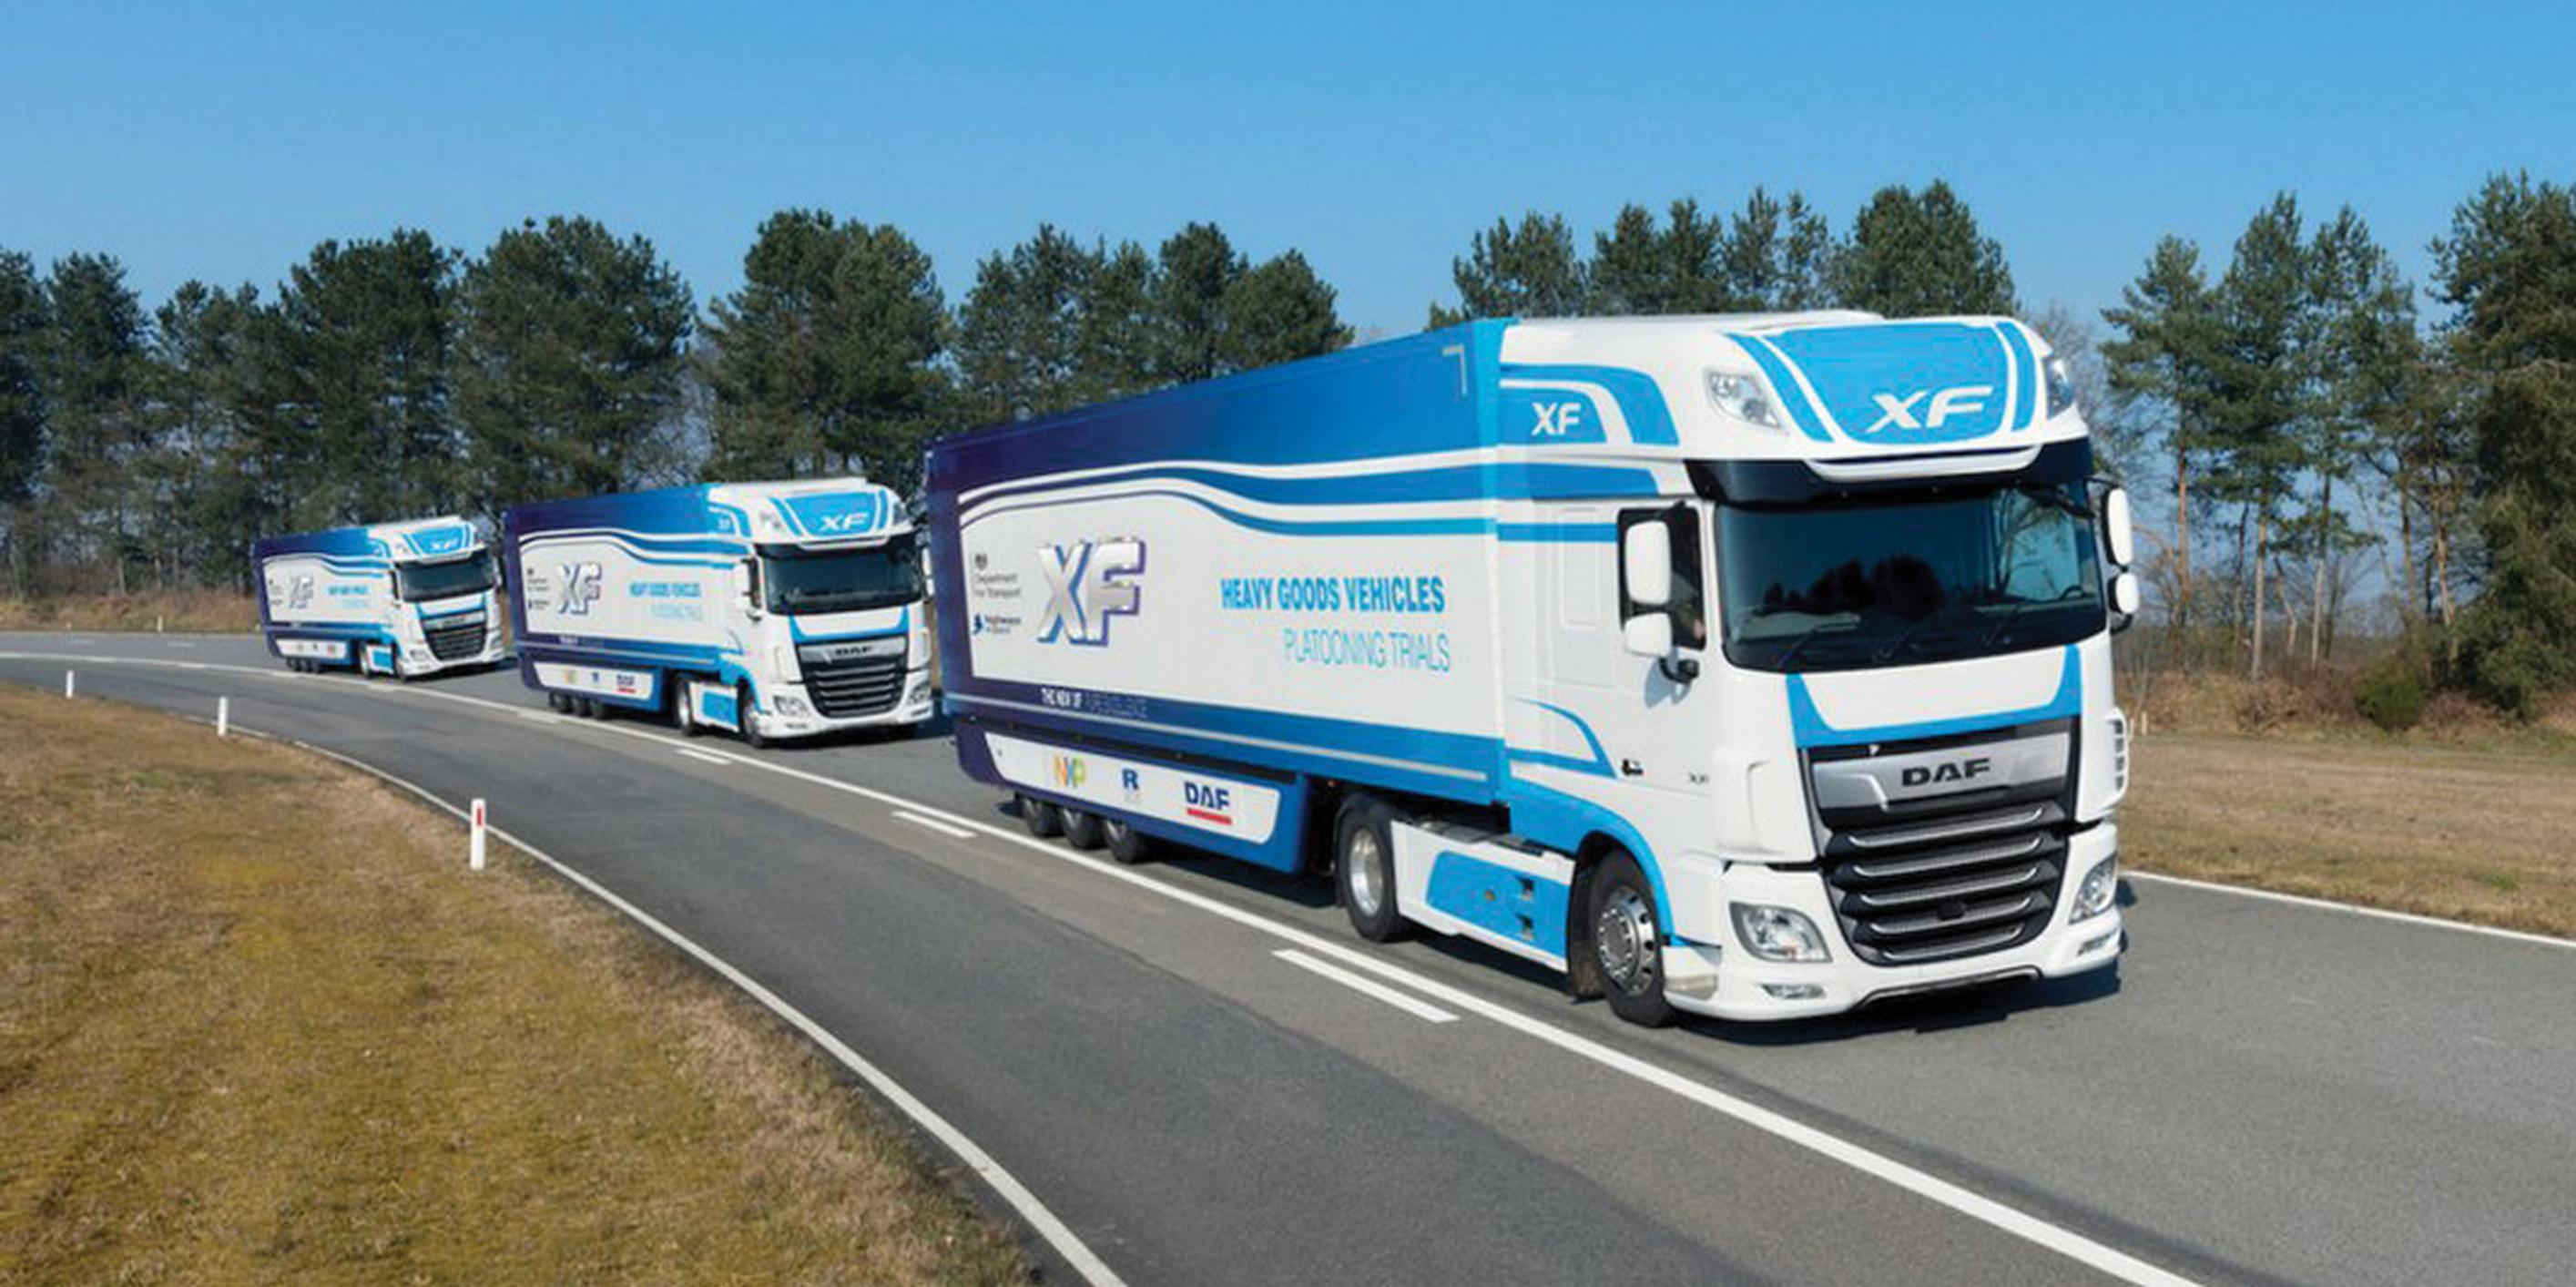 Platooning: maximum of three vehicles